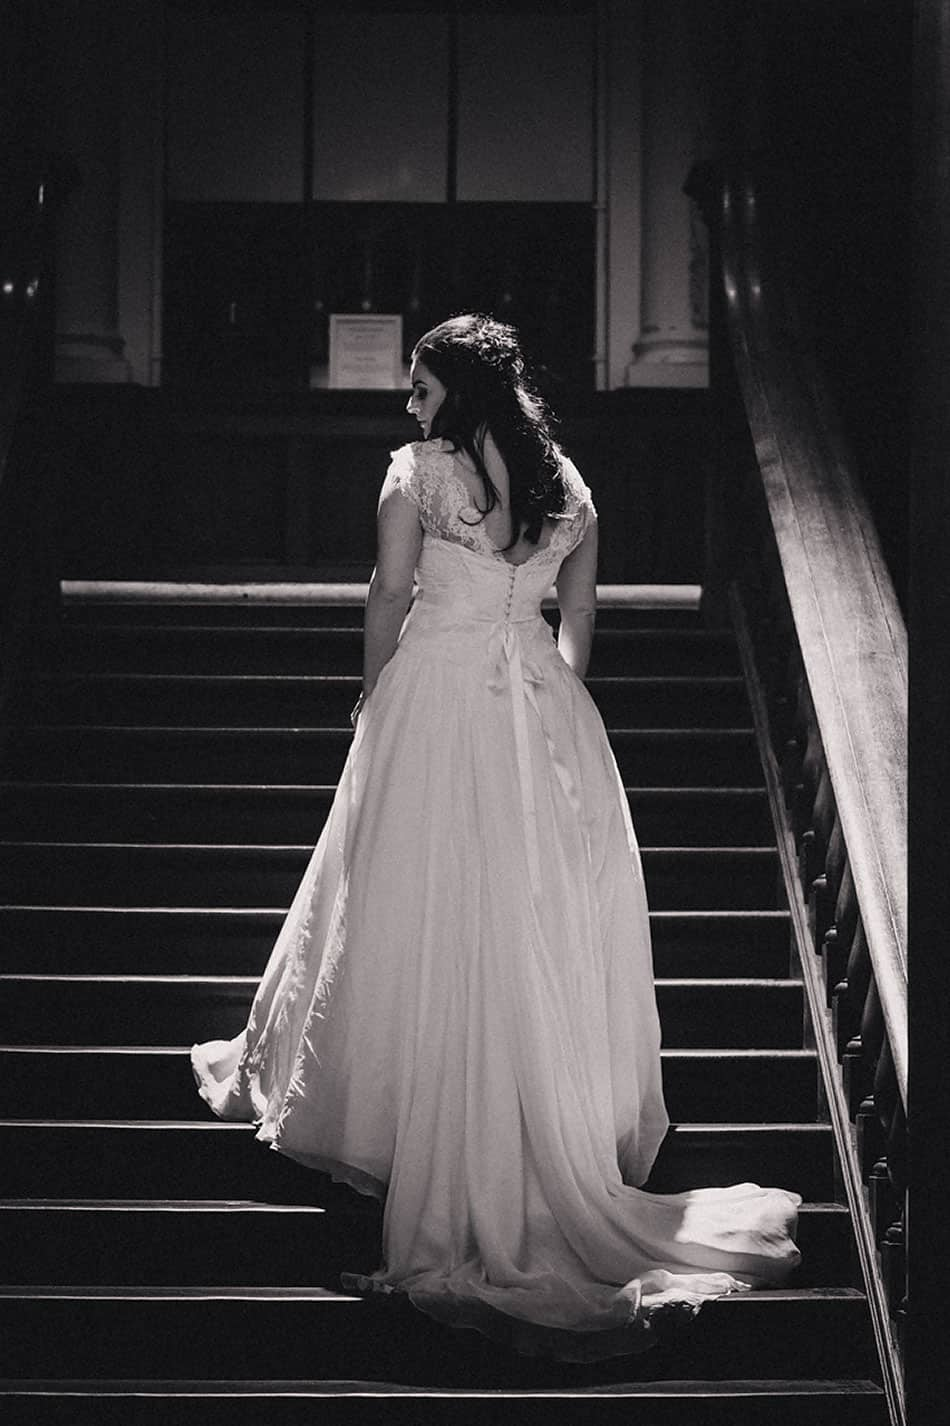 edinburgh summerhall wedding photos 80